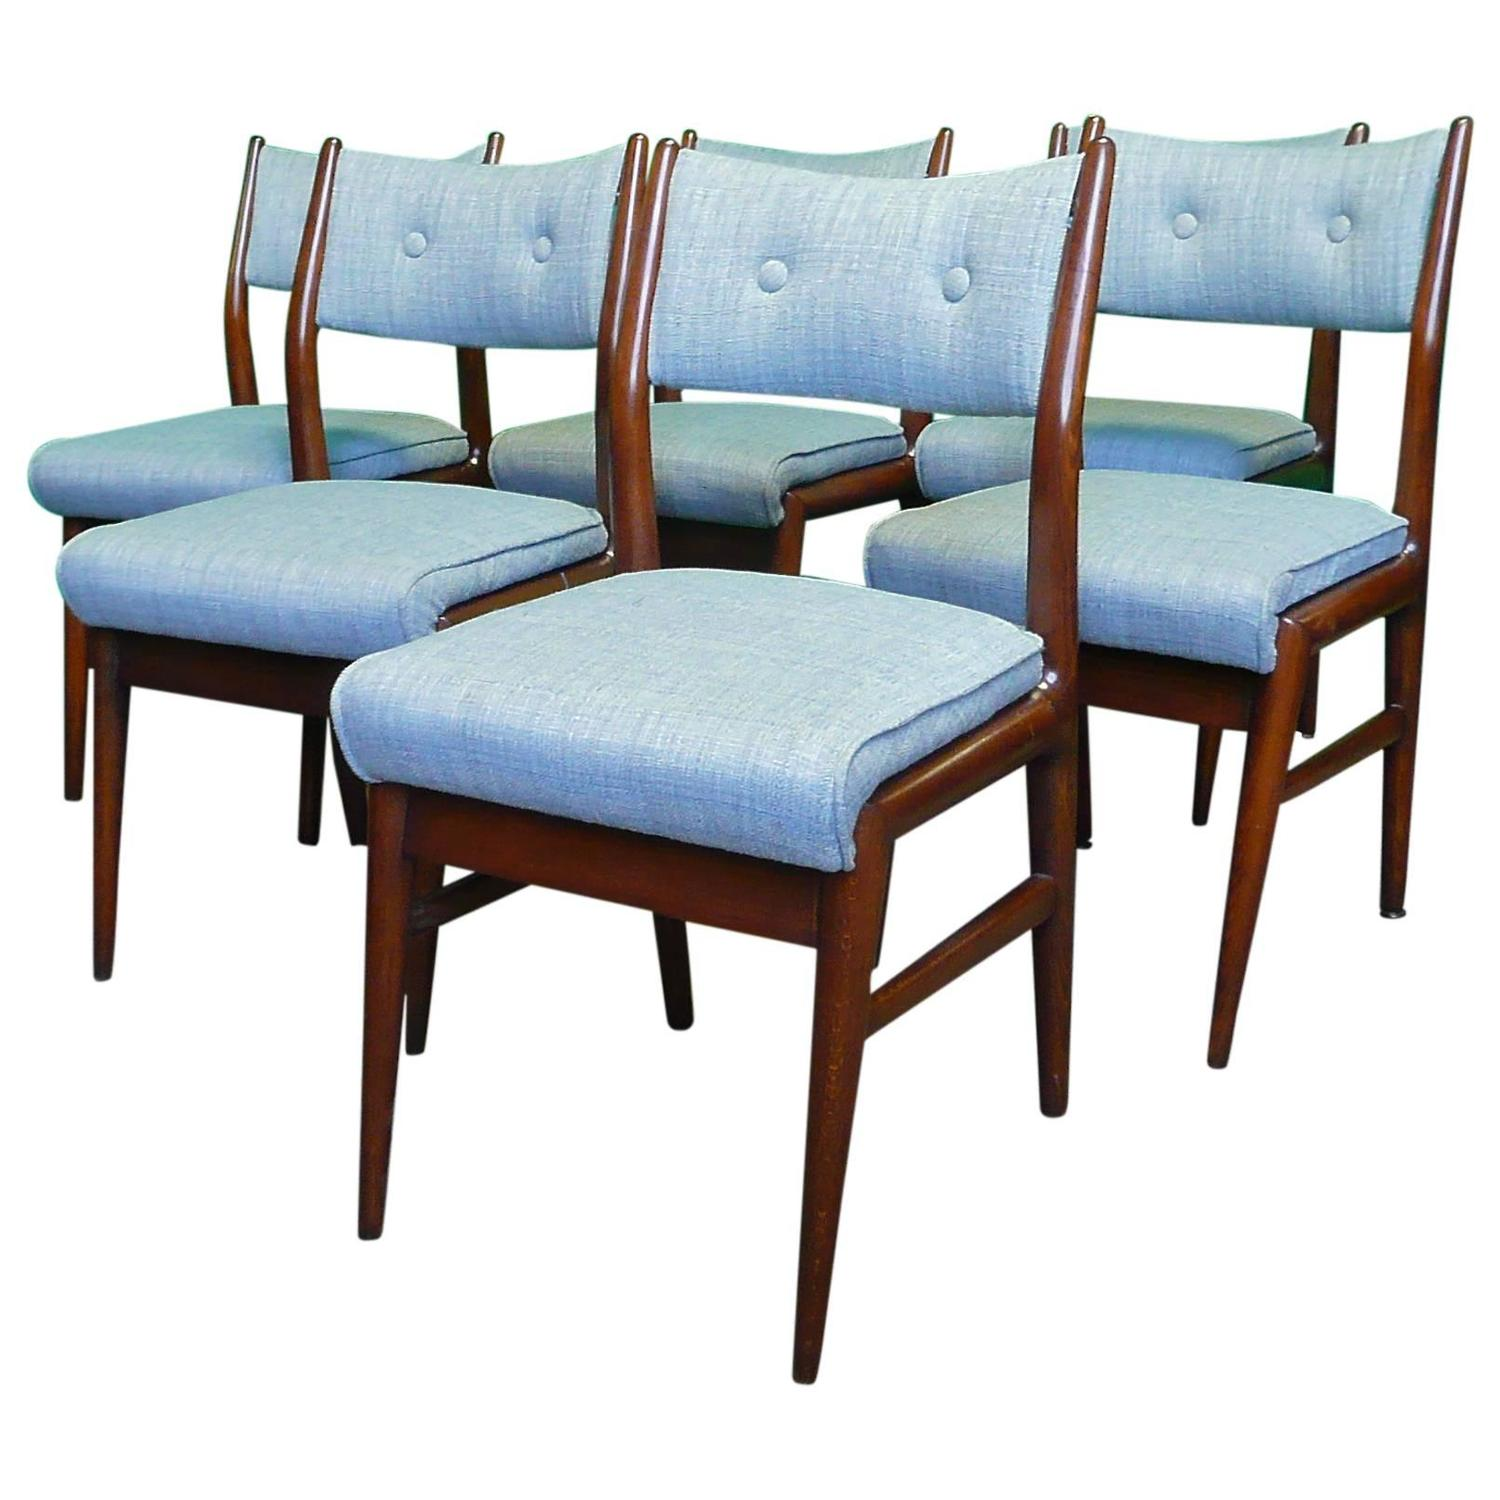 Mid century modern dining chairs at 1stdibs Mid century chairs